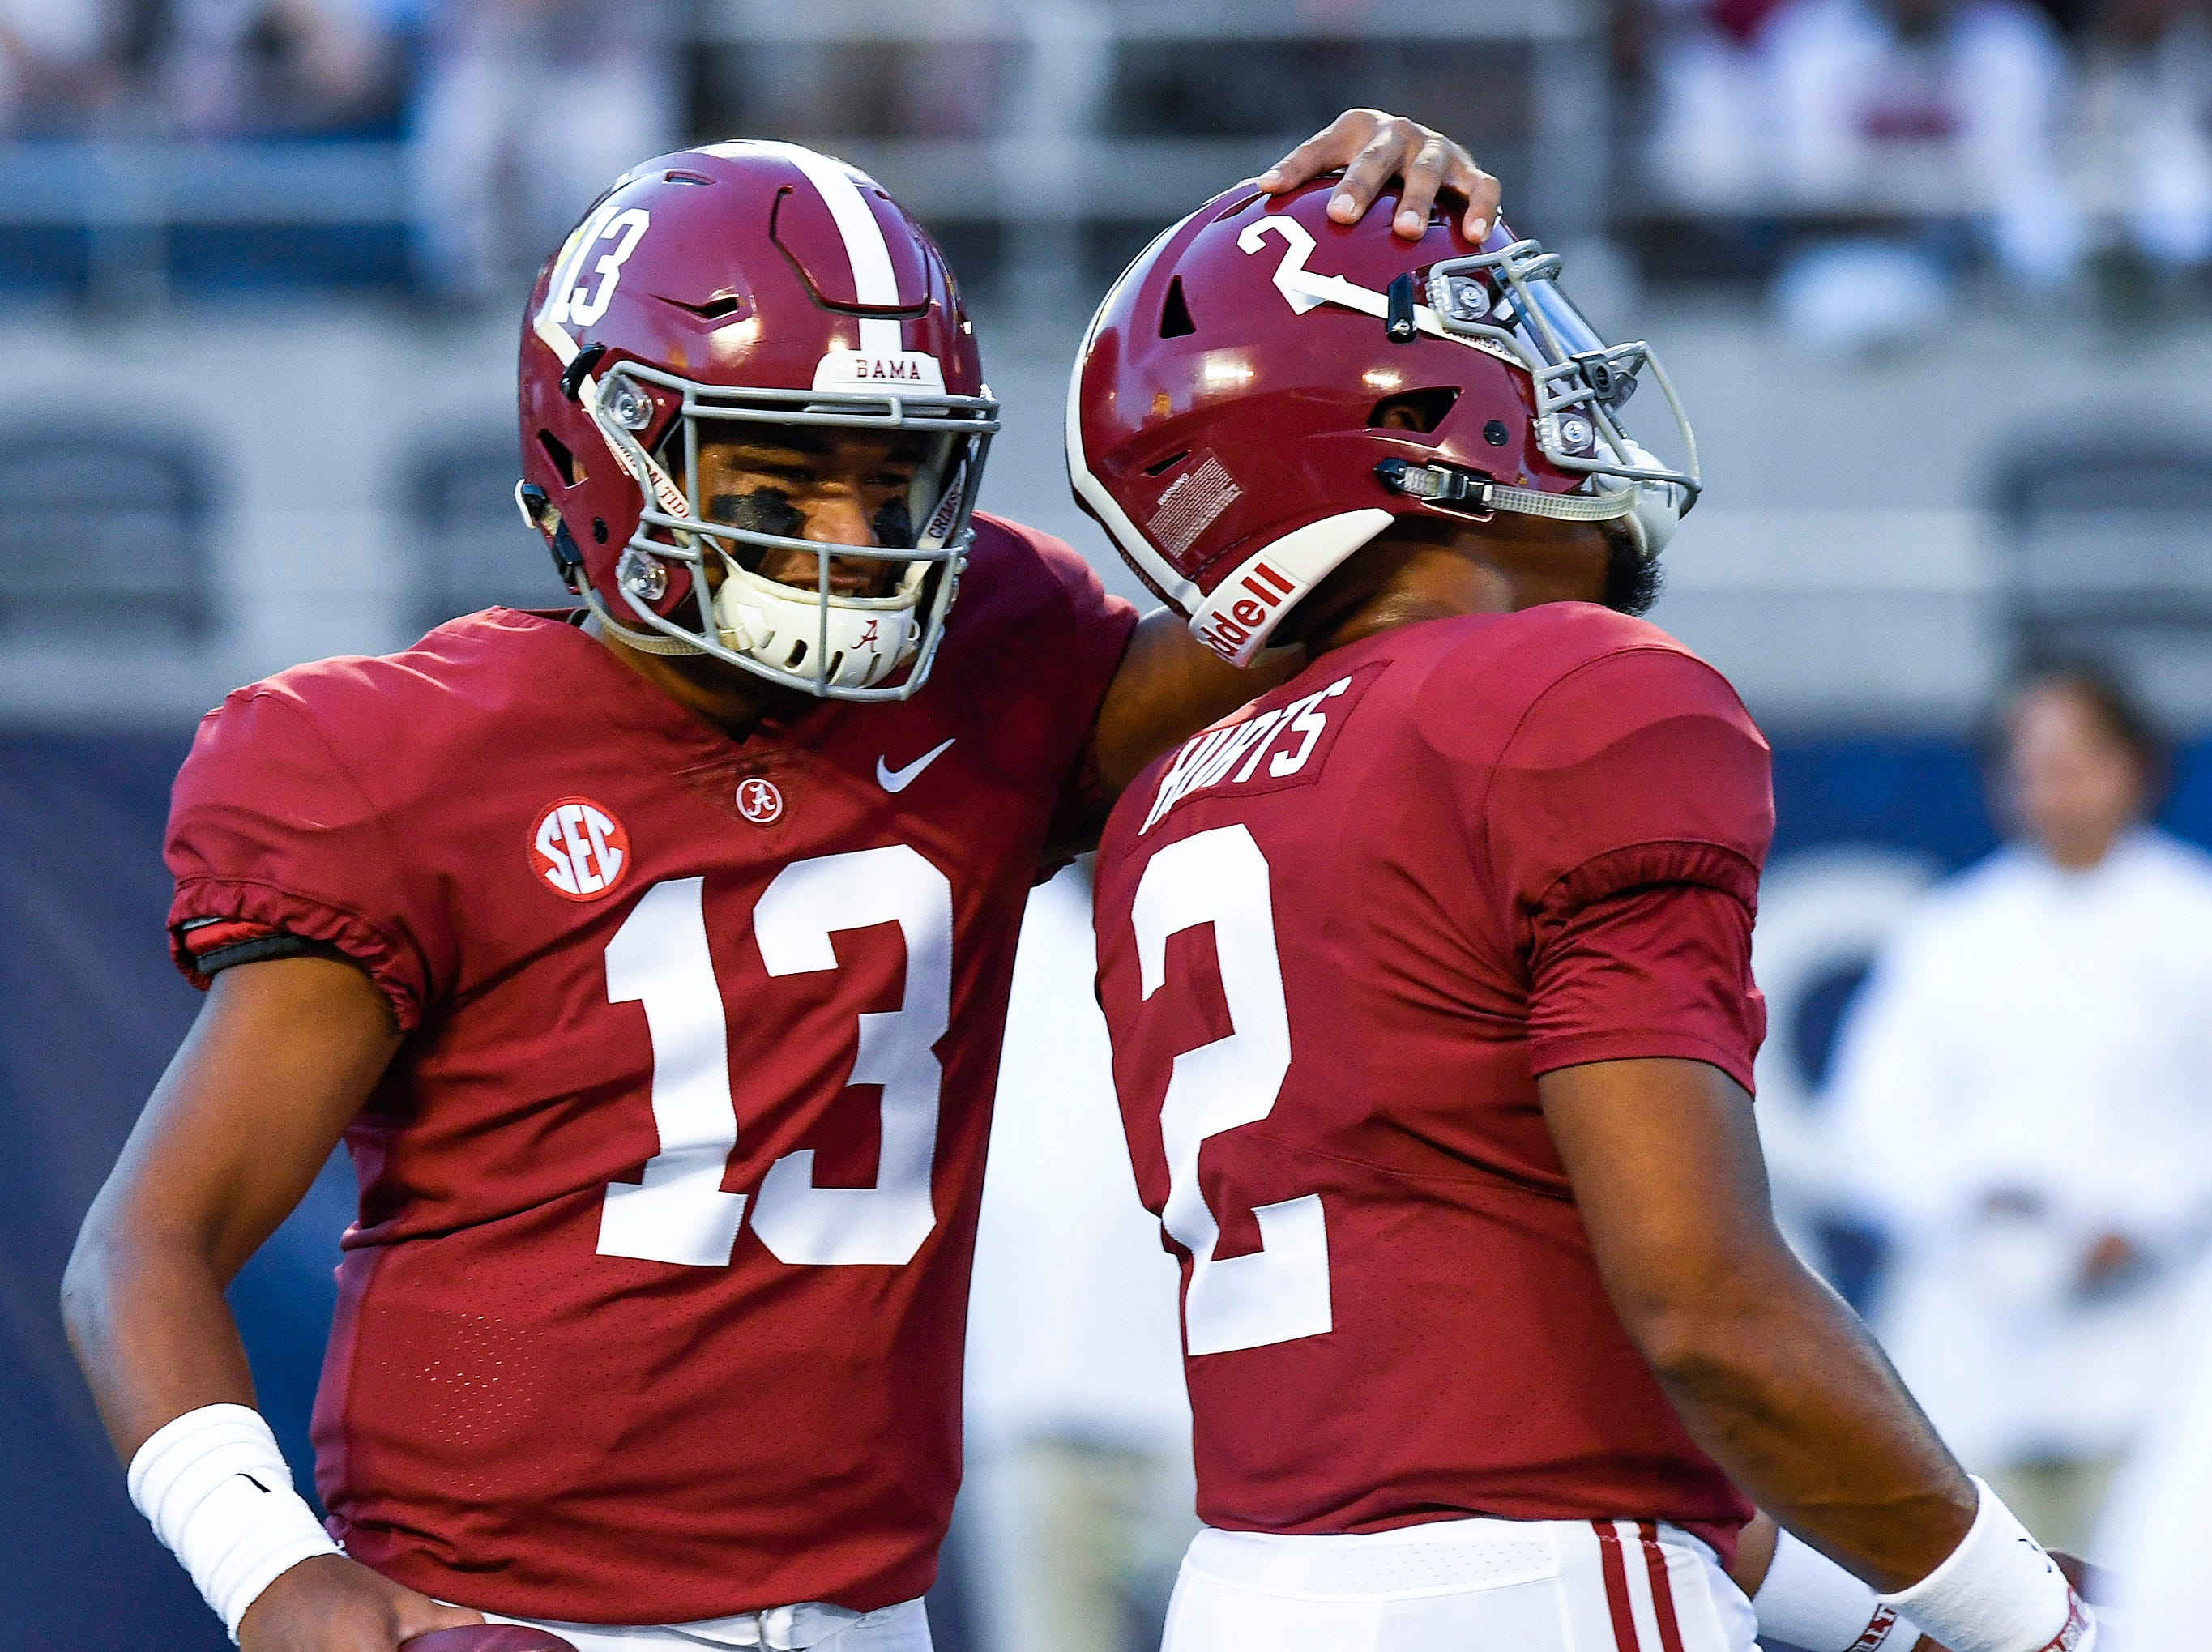 Alabama quarterback Tua Tagovailoa (13) hugs Jalen Hurts (2) during warmups before the Camping World Kickoff at Camping World Stadium in Orlando, Fla., on Saturday September 1, 2018.